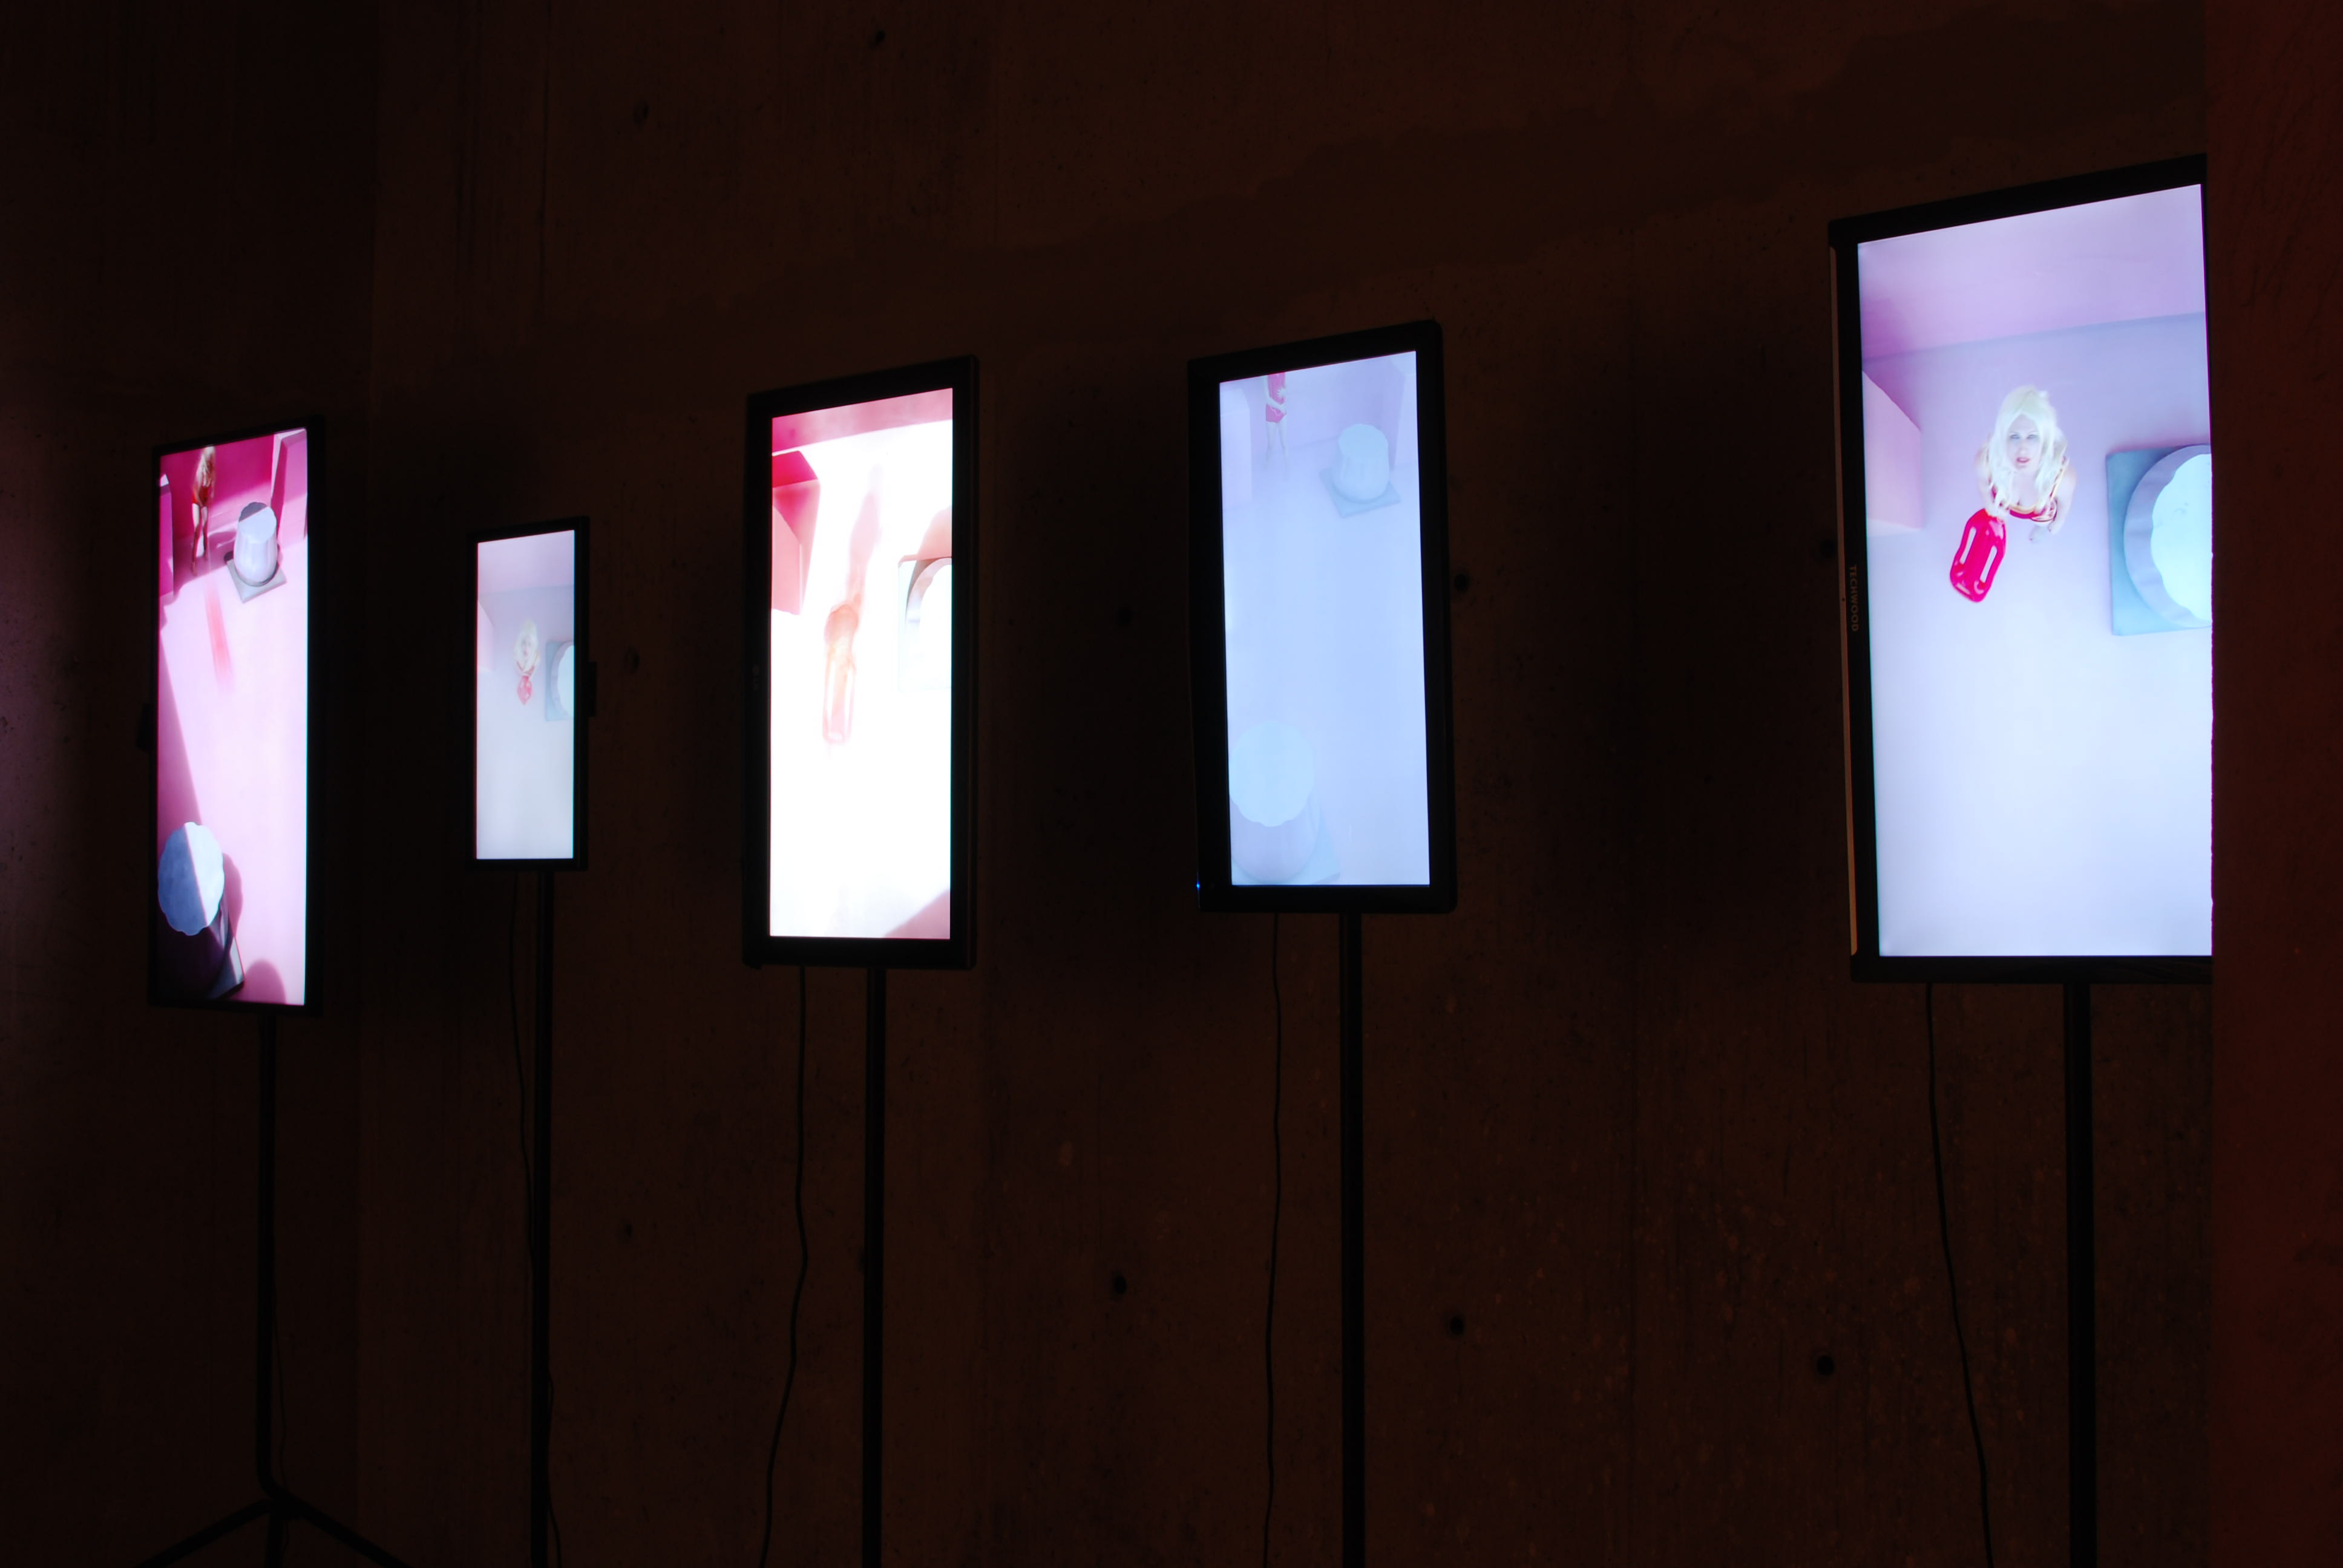 5 screen video installation, 2013